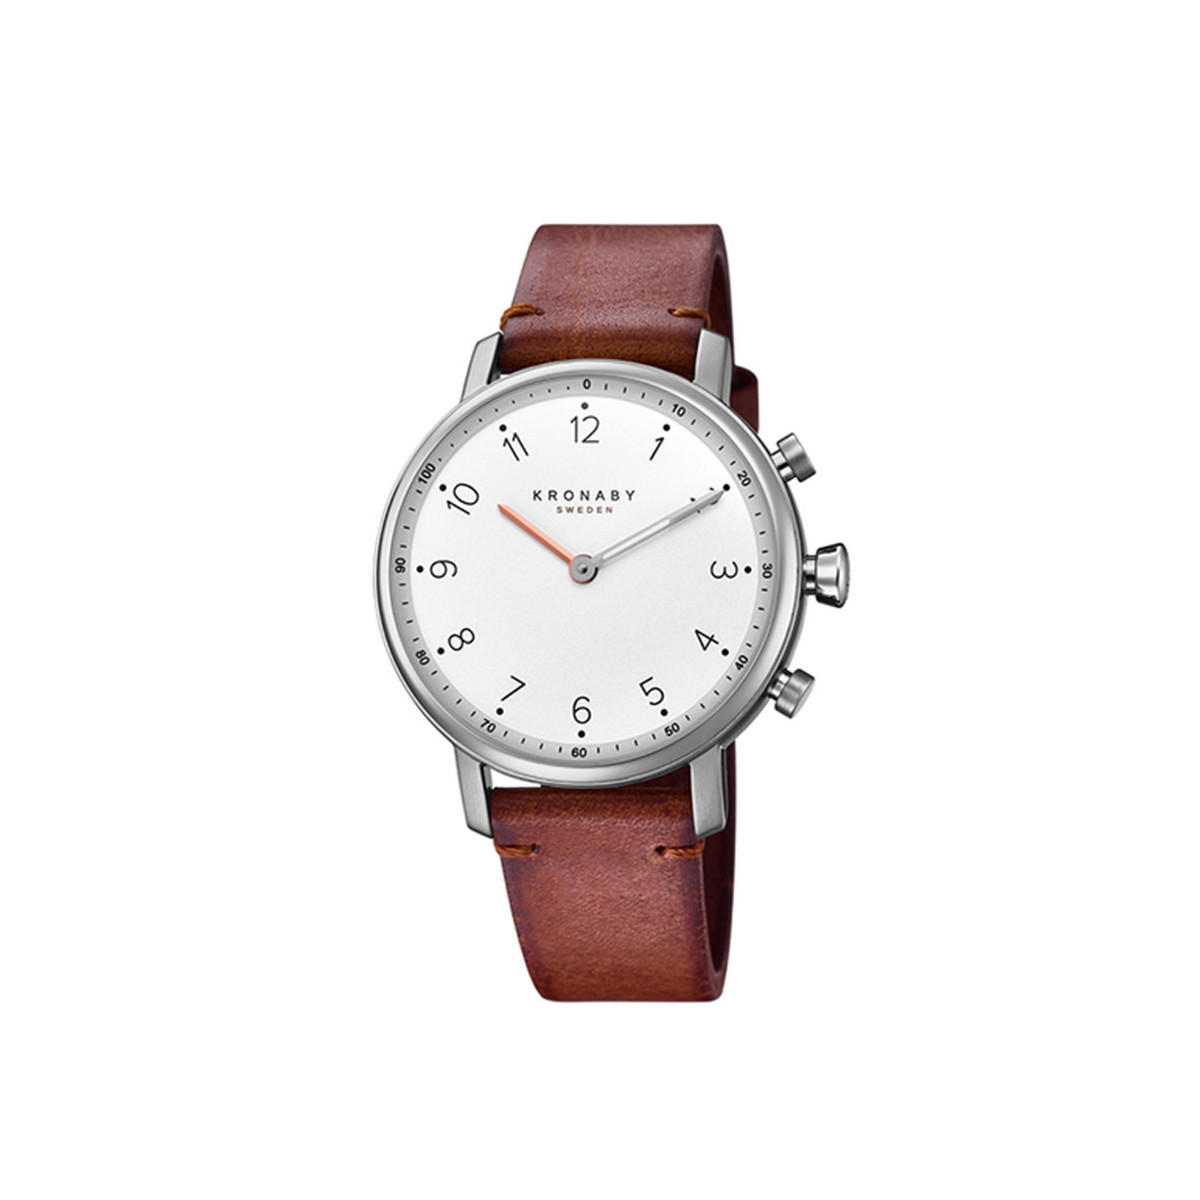 KRONABY NORD SILVER BROWN STRAP